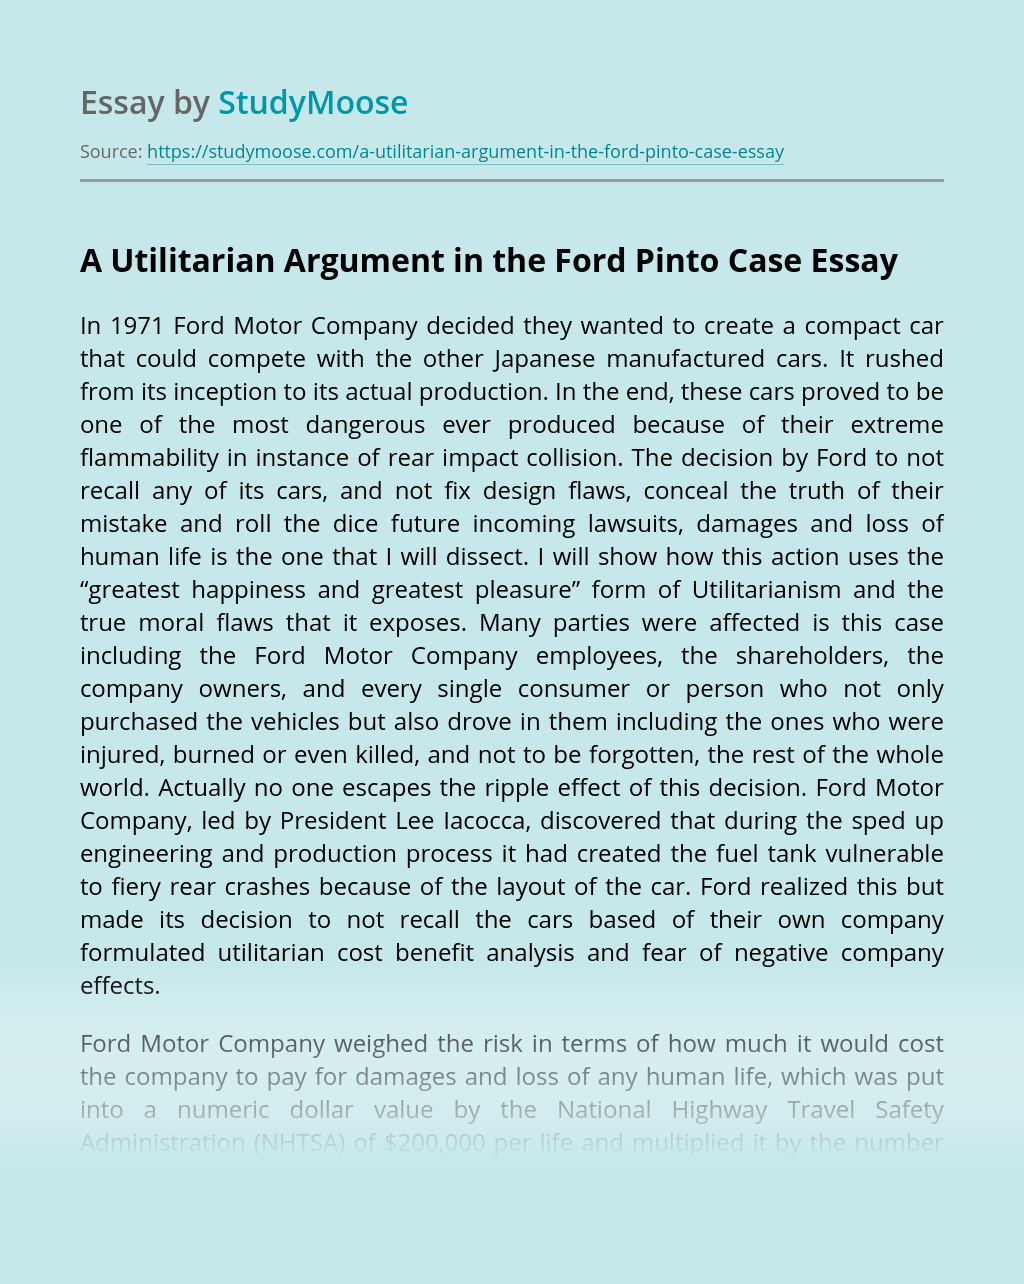 A Utilitarian Argument in the Ford Pinto Case